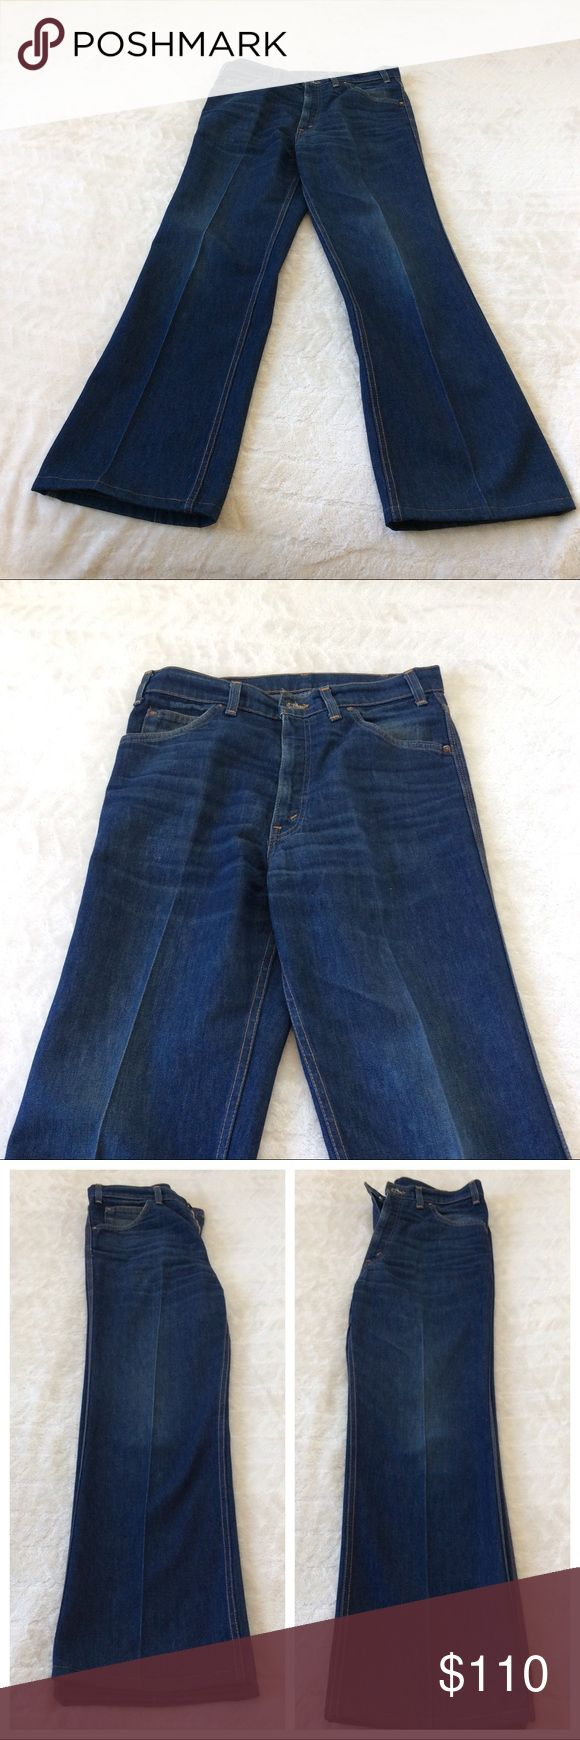 Men's Vintage Movin' On Levi's with talon zipper Men's Vintage Movin' on Levi's are in wonderful condition. Features a permanent crease down each leg. Bright blue and orange Movin' On tag on the left pocket. Levi's Jeans Bootcut